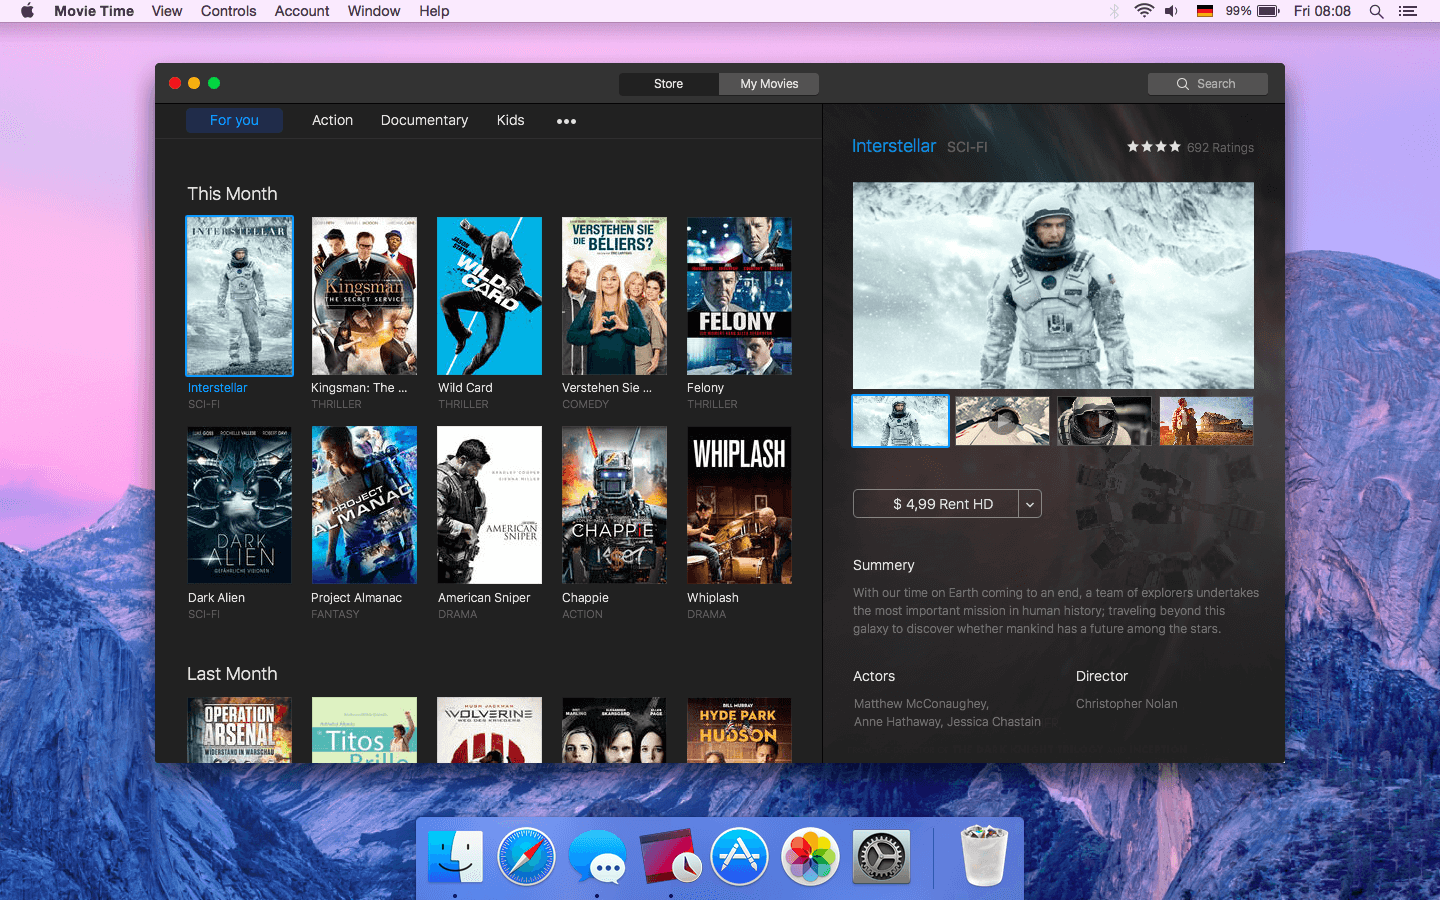 iTunes - Movie Time